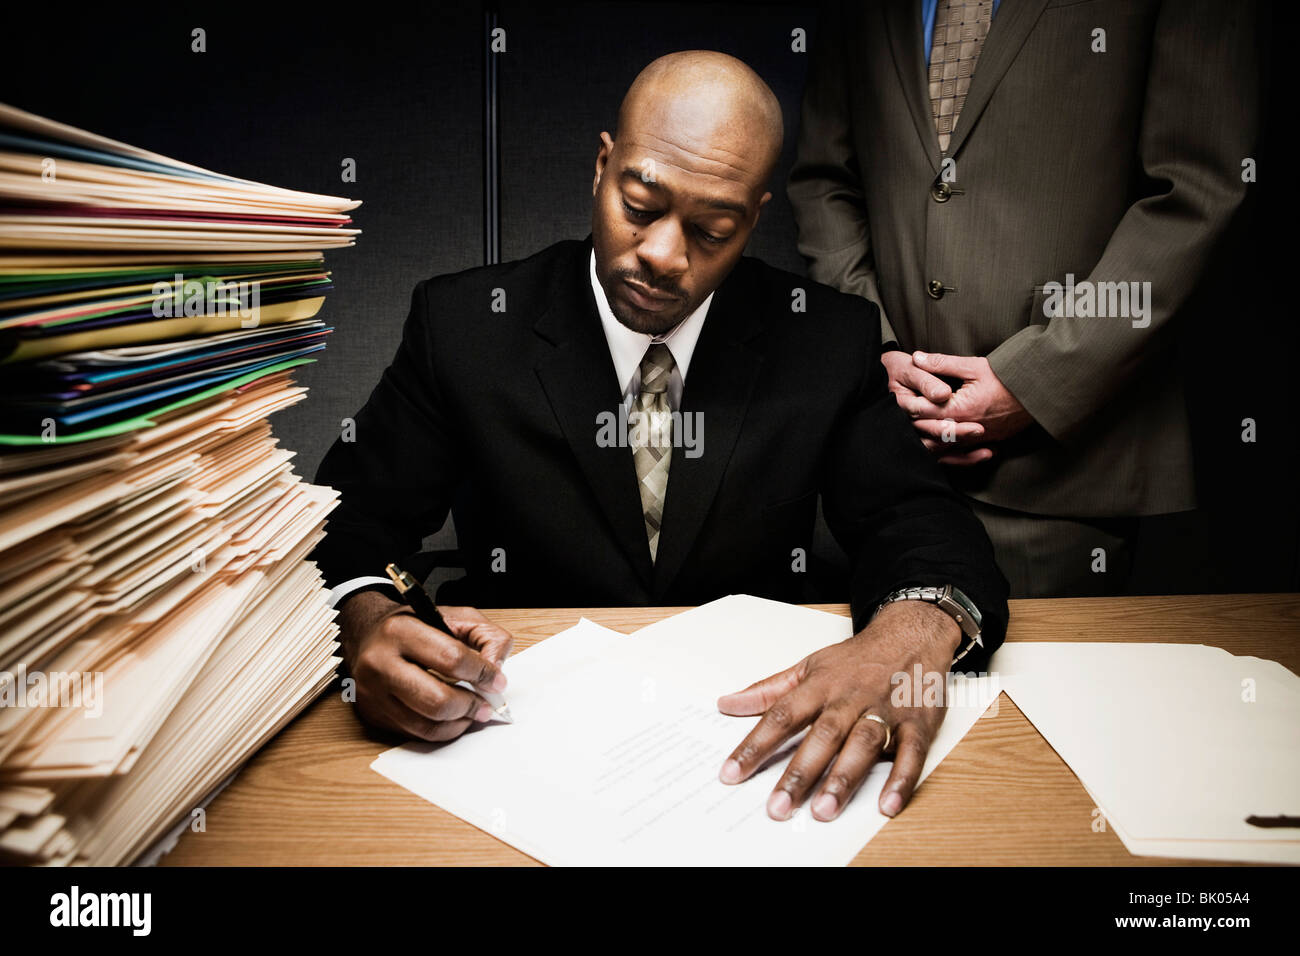 Man doing paperwork with man behind him - Stock Image